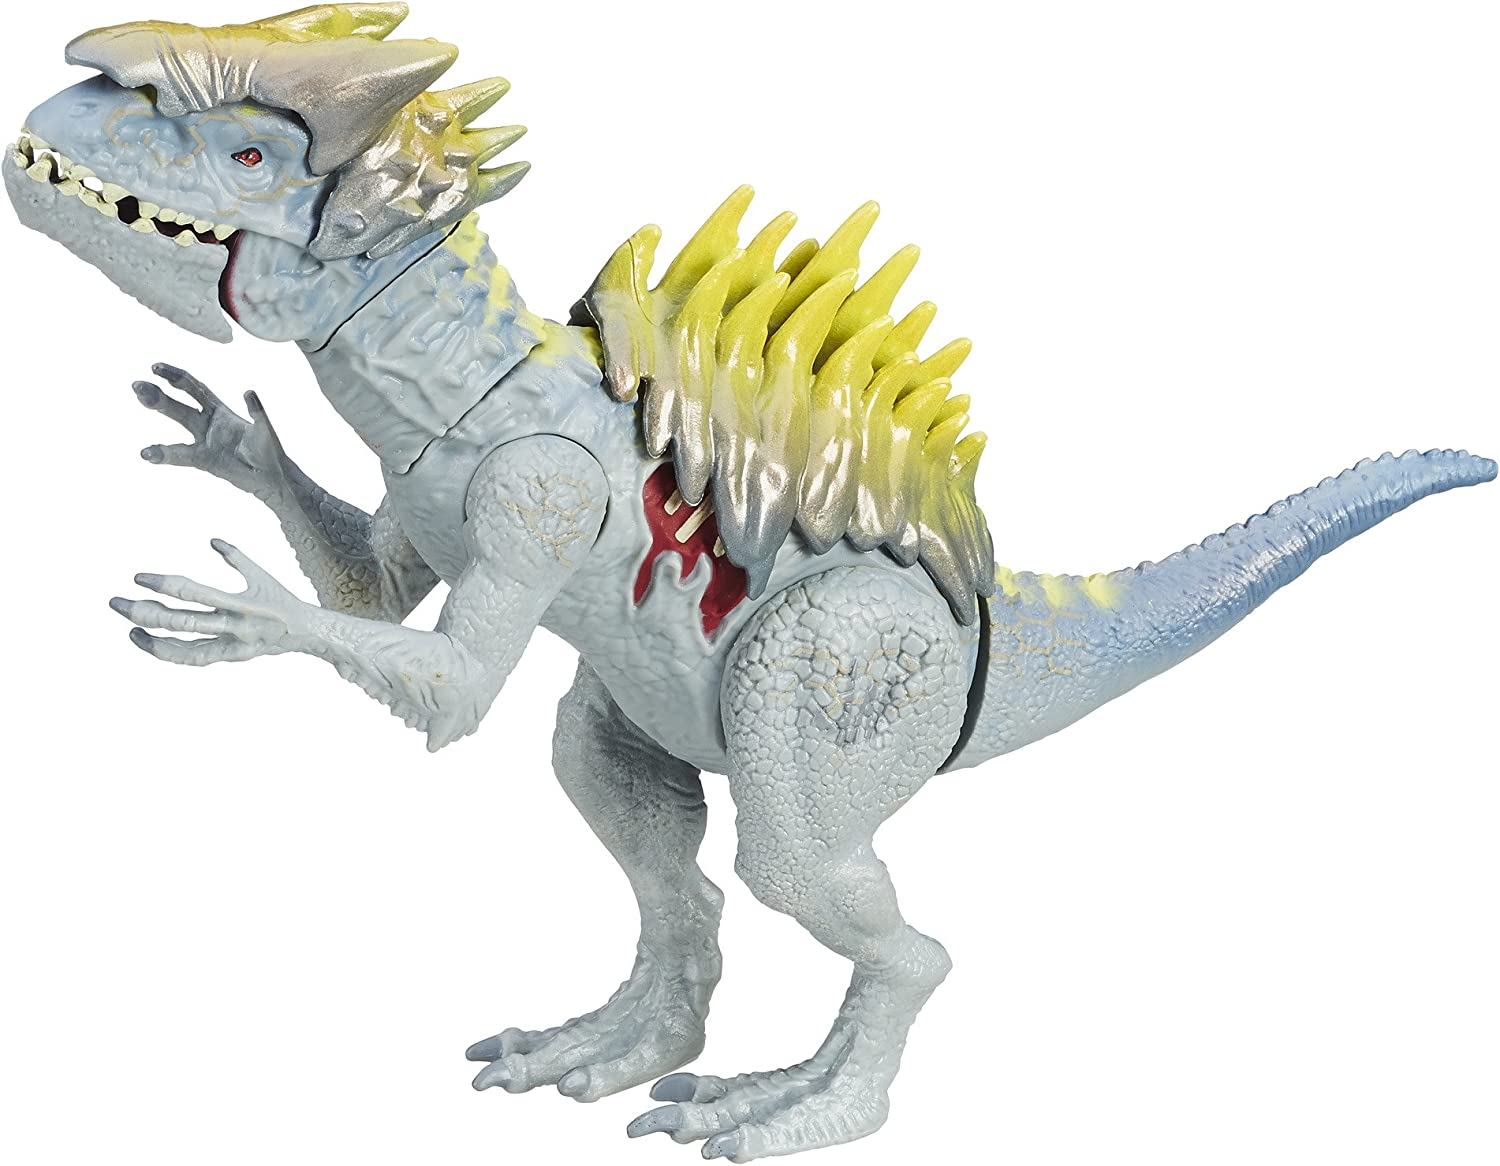 Top 7 Best Jurassic World Toys (2020 Reviews & Buying Guide) 4